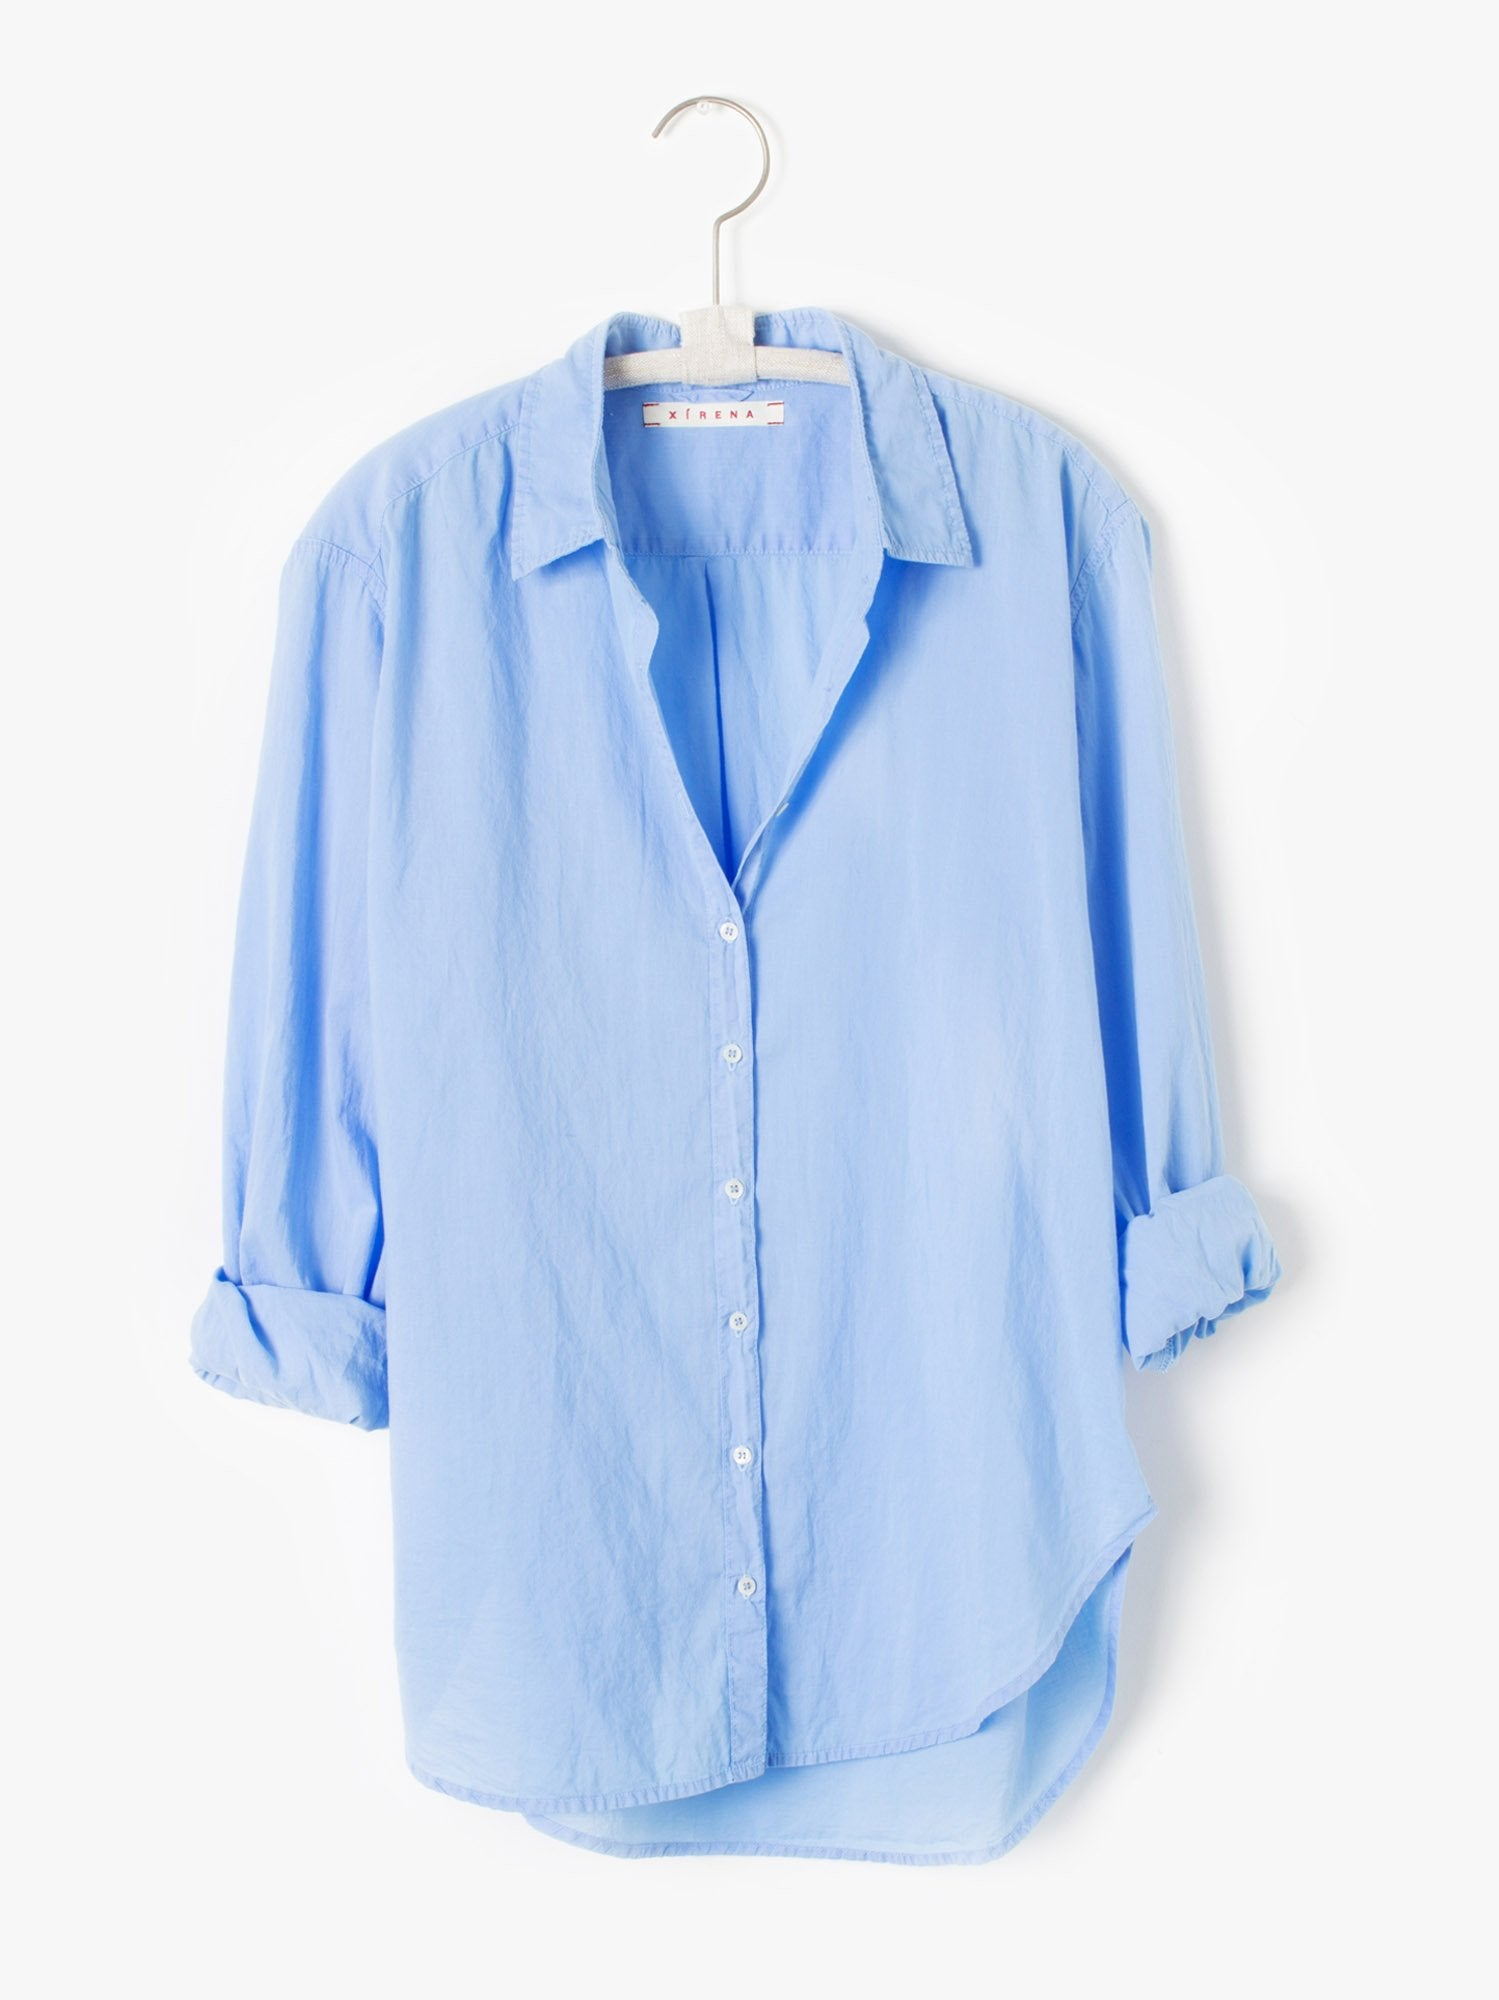 Xirena Cruise Blue Beau Shirt